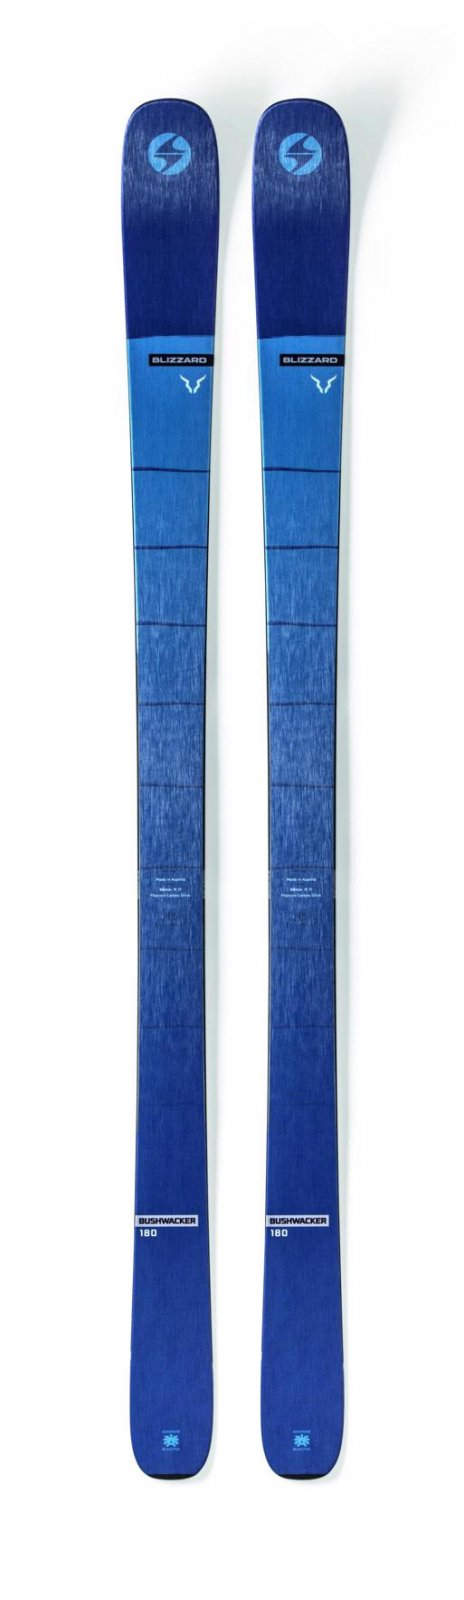 Blizzard Bushwacker Skis 2020